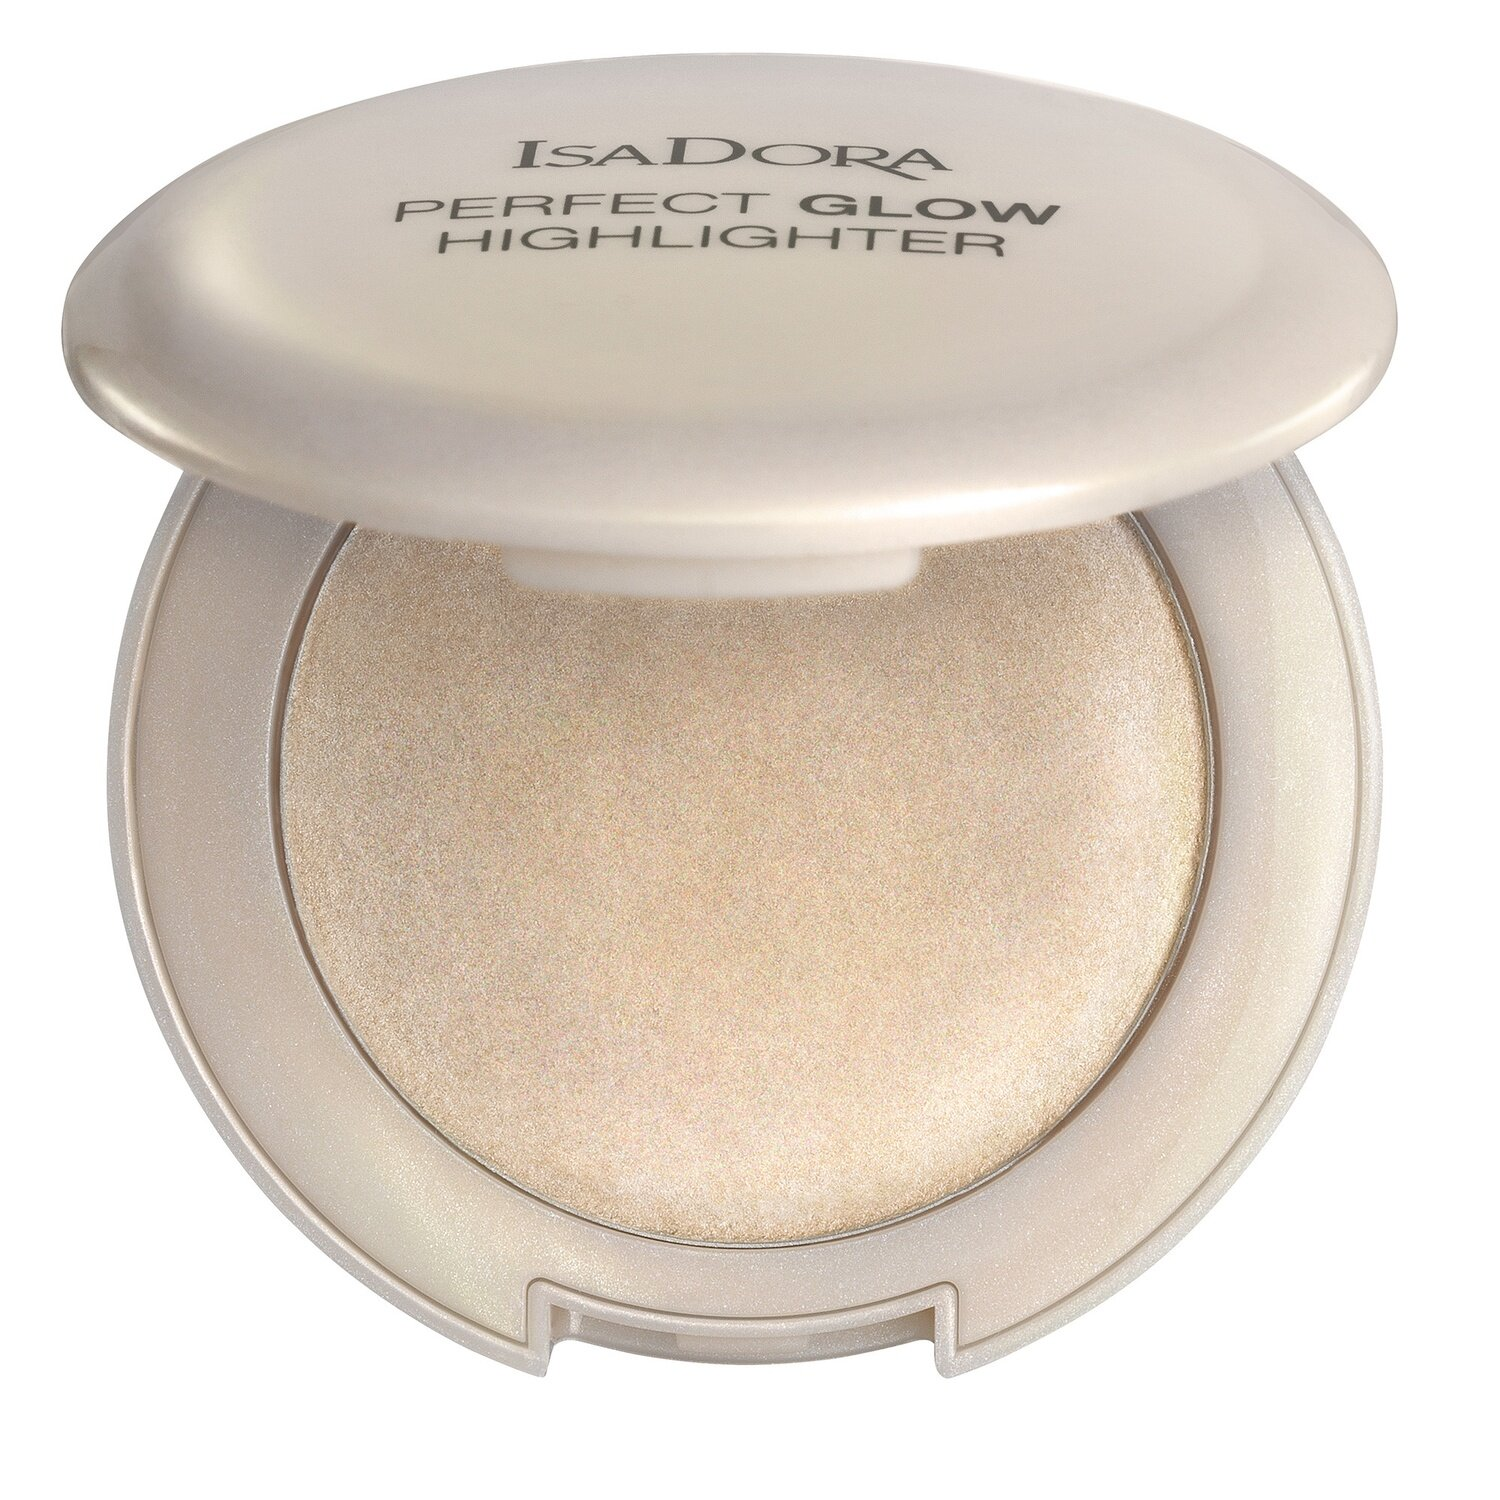 Champagne Glow 60  Perfect Glow Highlighter